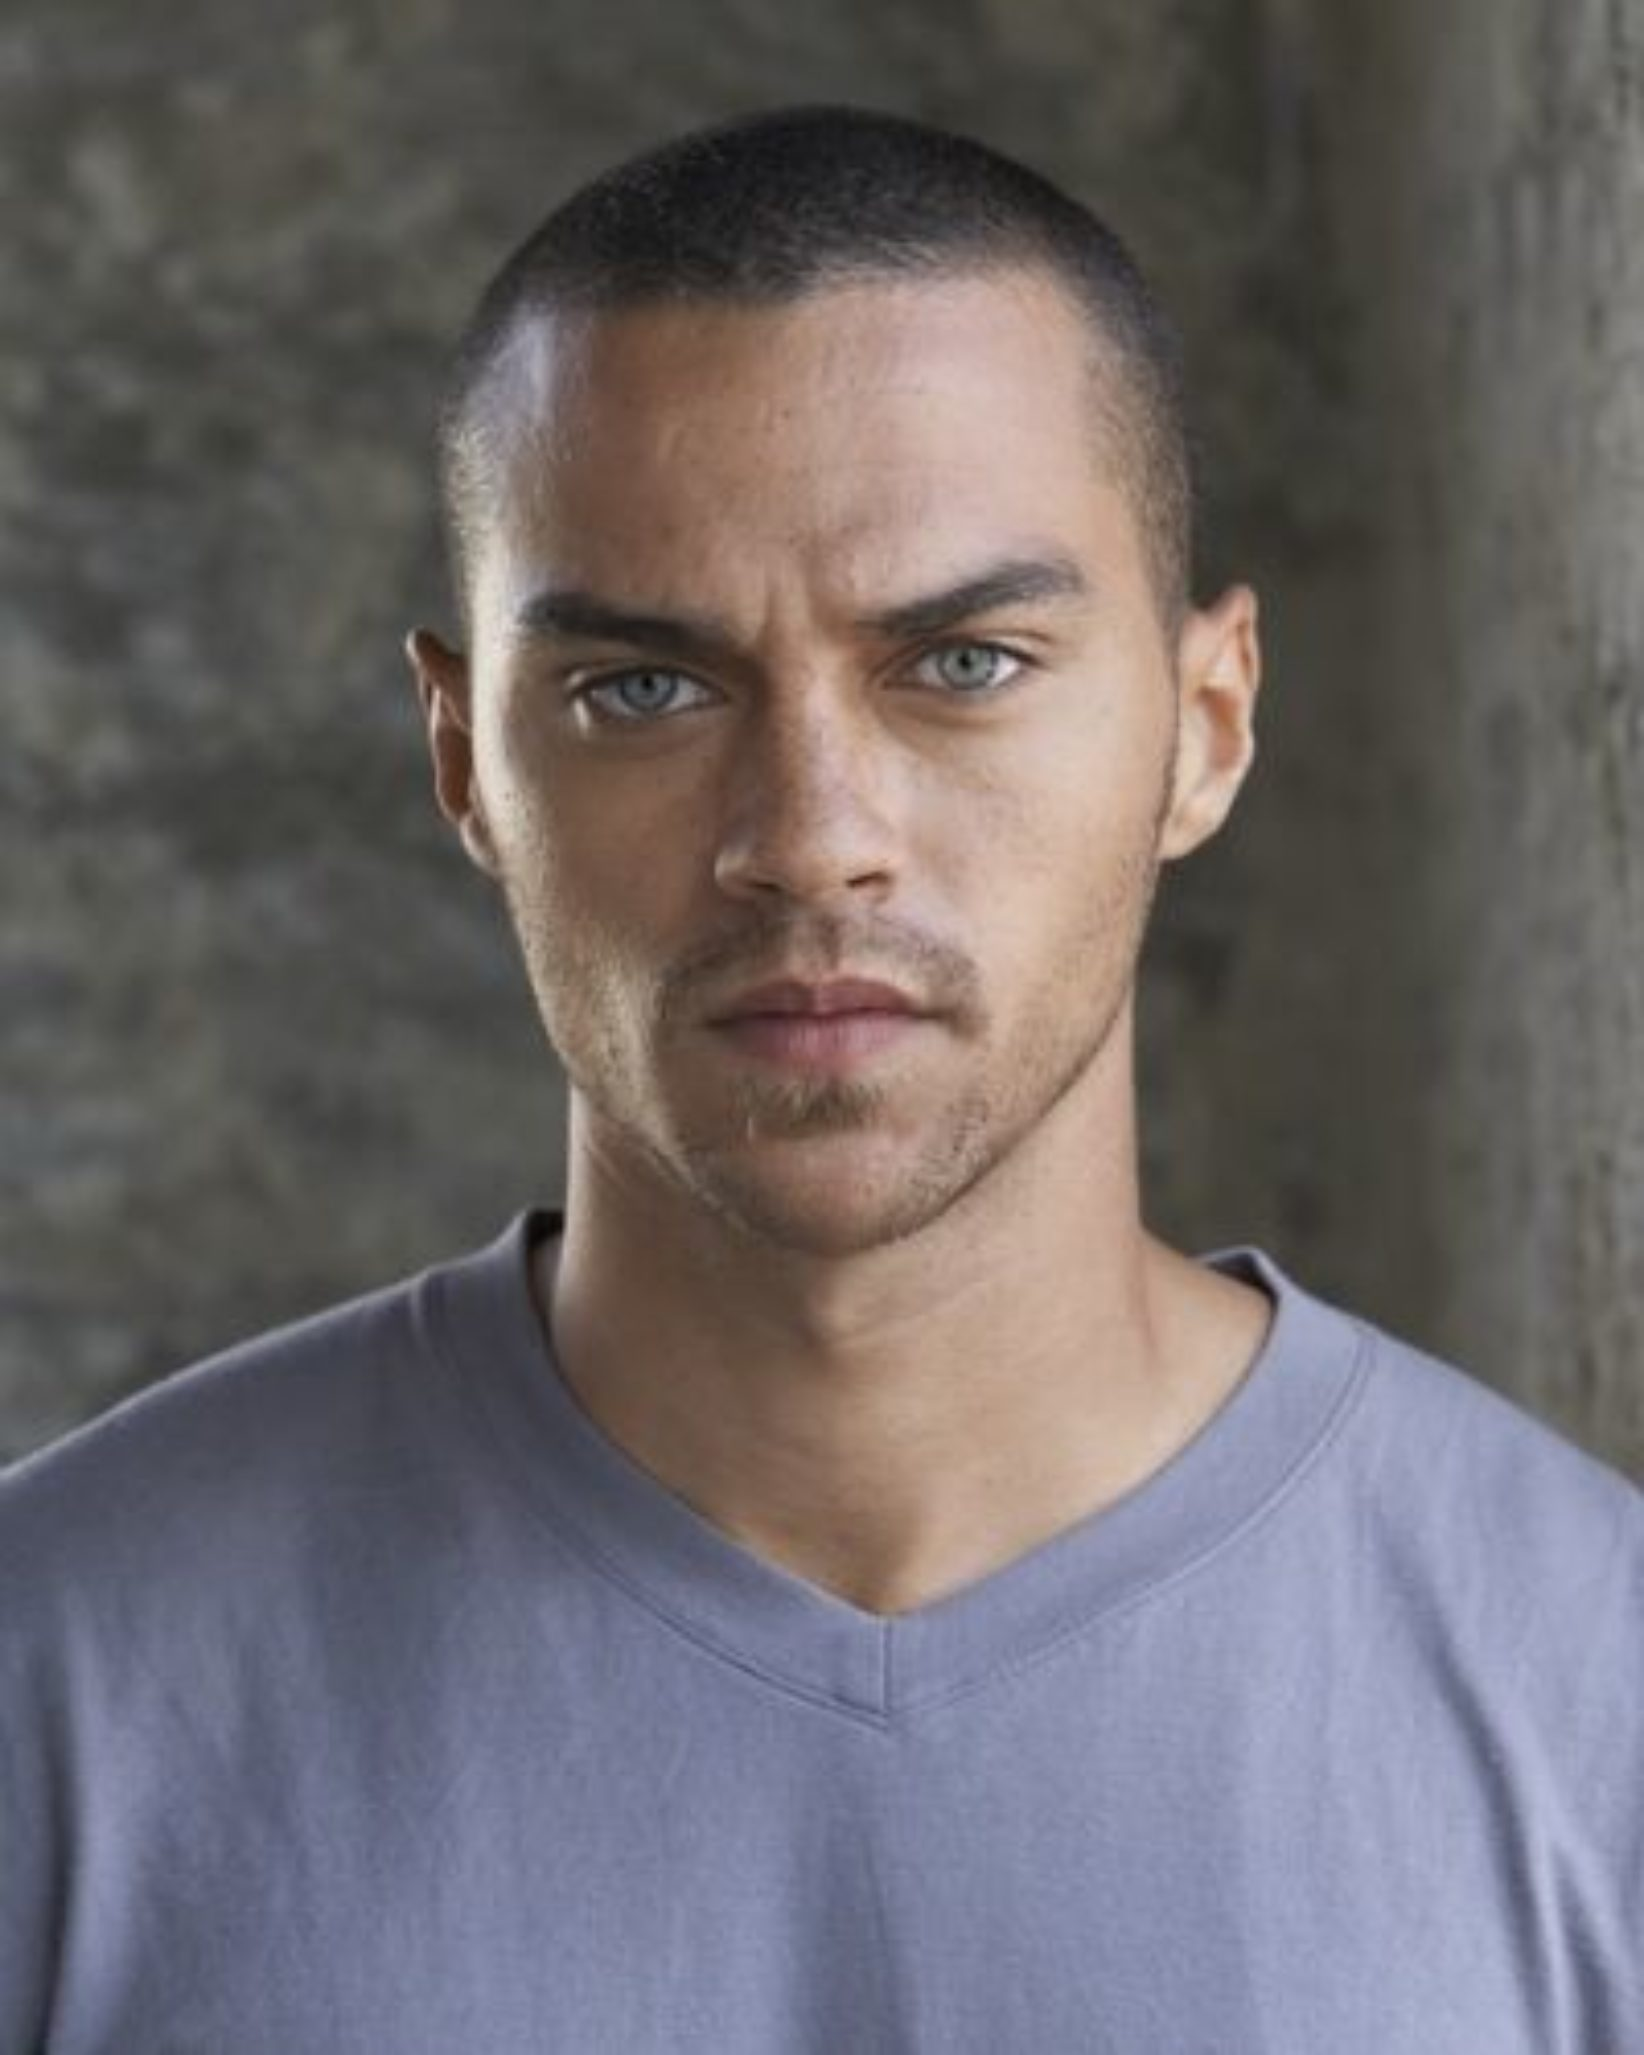 Jesse Williams - Advancement Project - Advancement Project